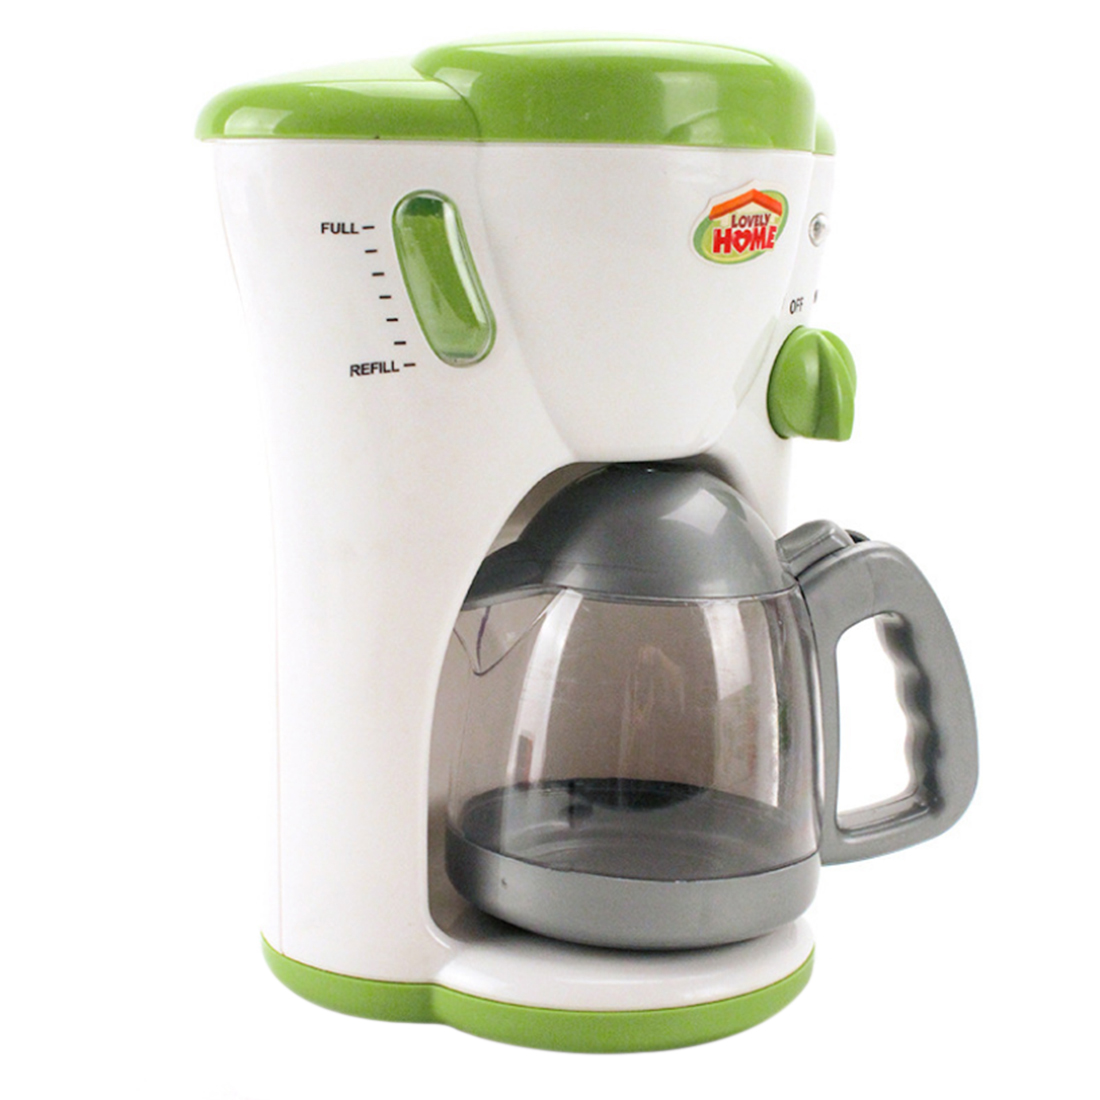 Children Kitchen Pretend Play Toy Household Coffee Maker Simulation Appliances Support Kid Learning Skill Set